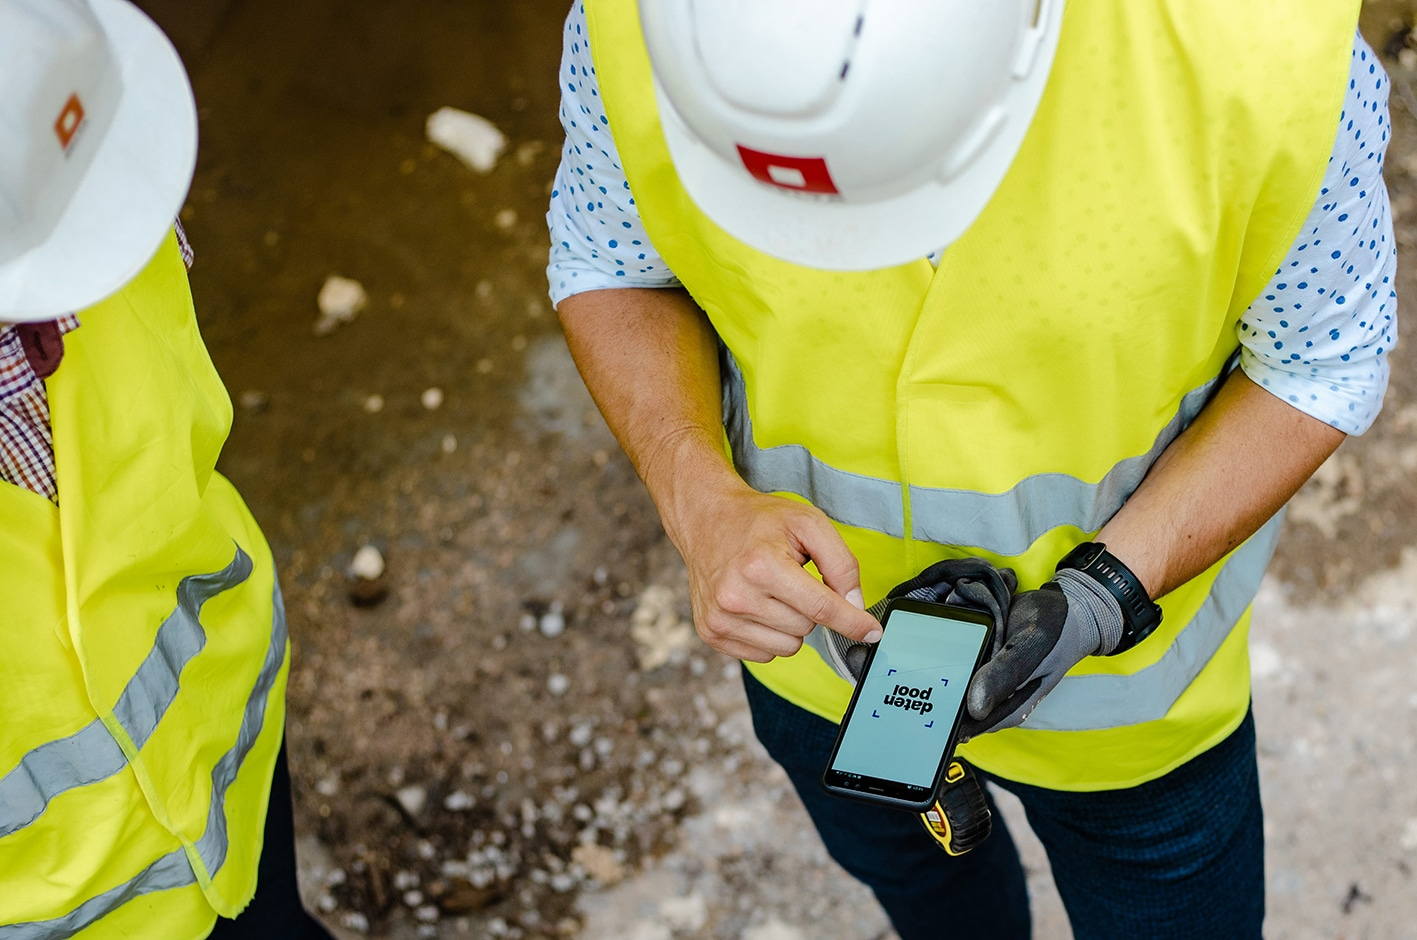 People_Construction_Site_Phone